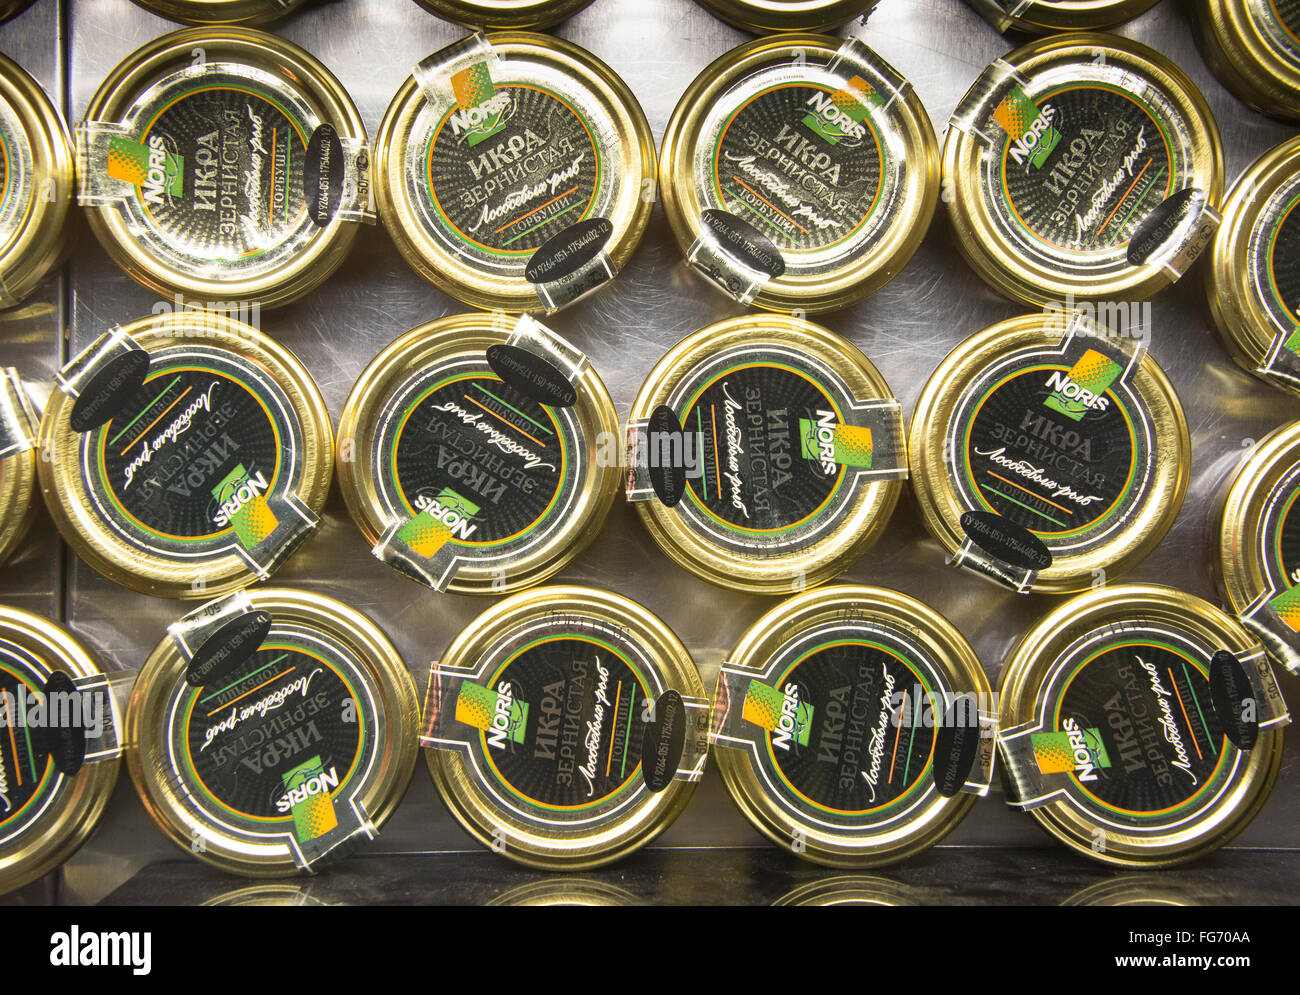 Jars of Russian caviar in tourist shop, Saint Petersburg, Northwestern Region, Russian Federation - Stock Image